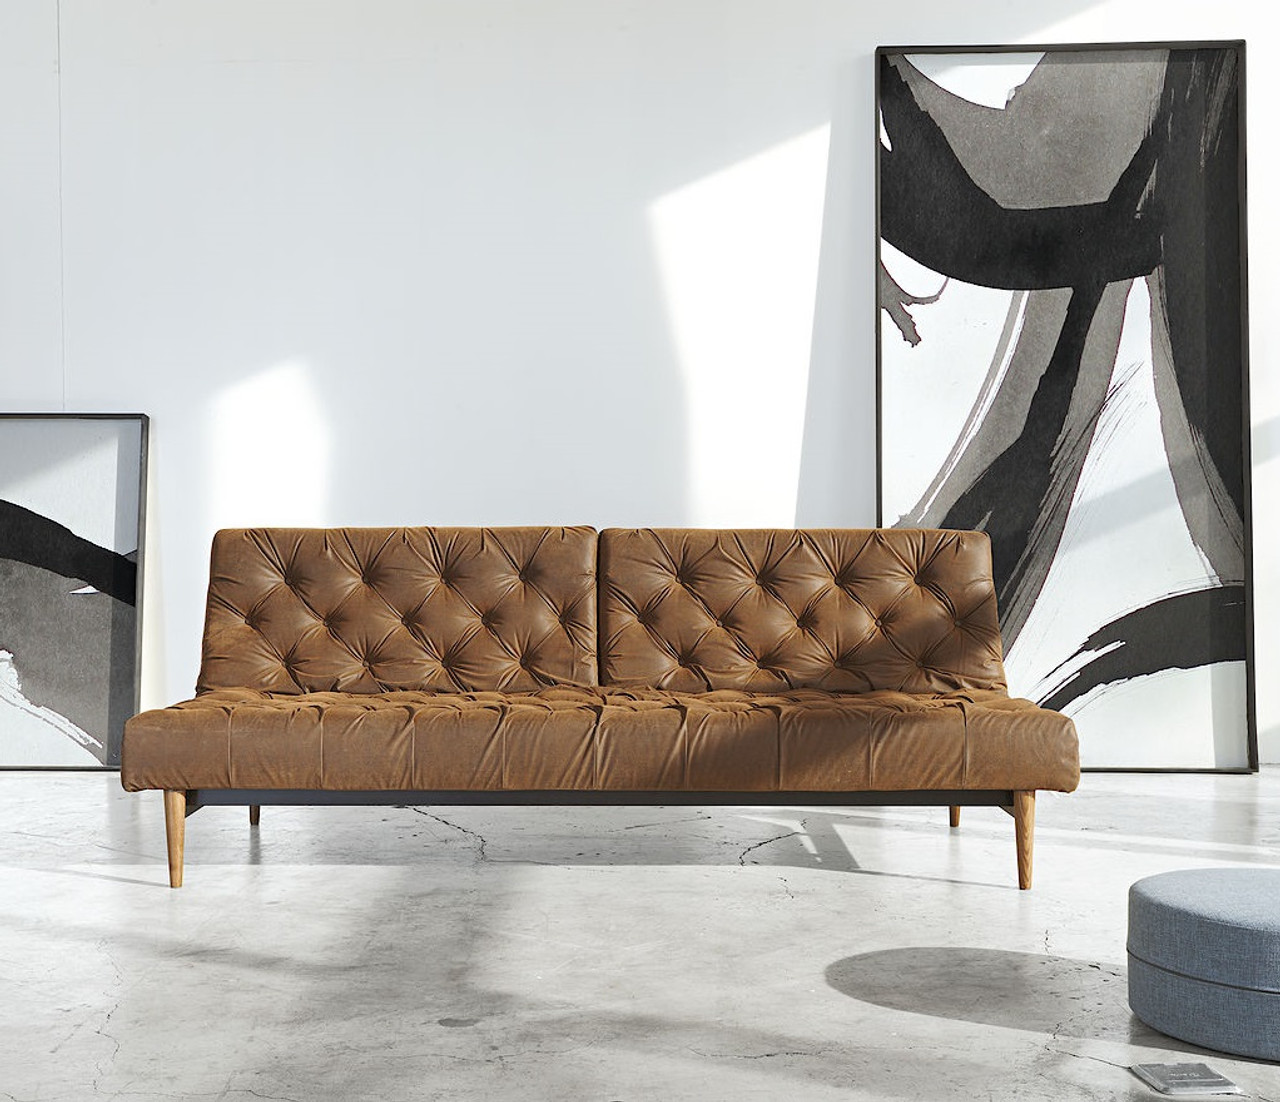 Oldschool Vintage Leather Chesterfield Sofa Bed Zin Home